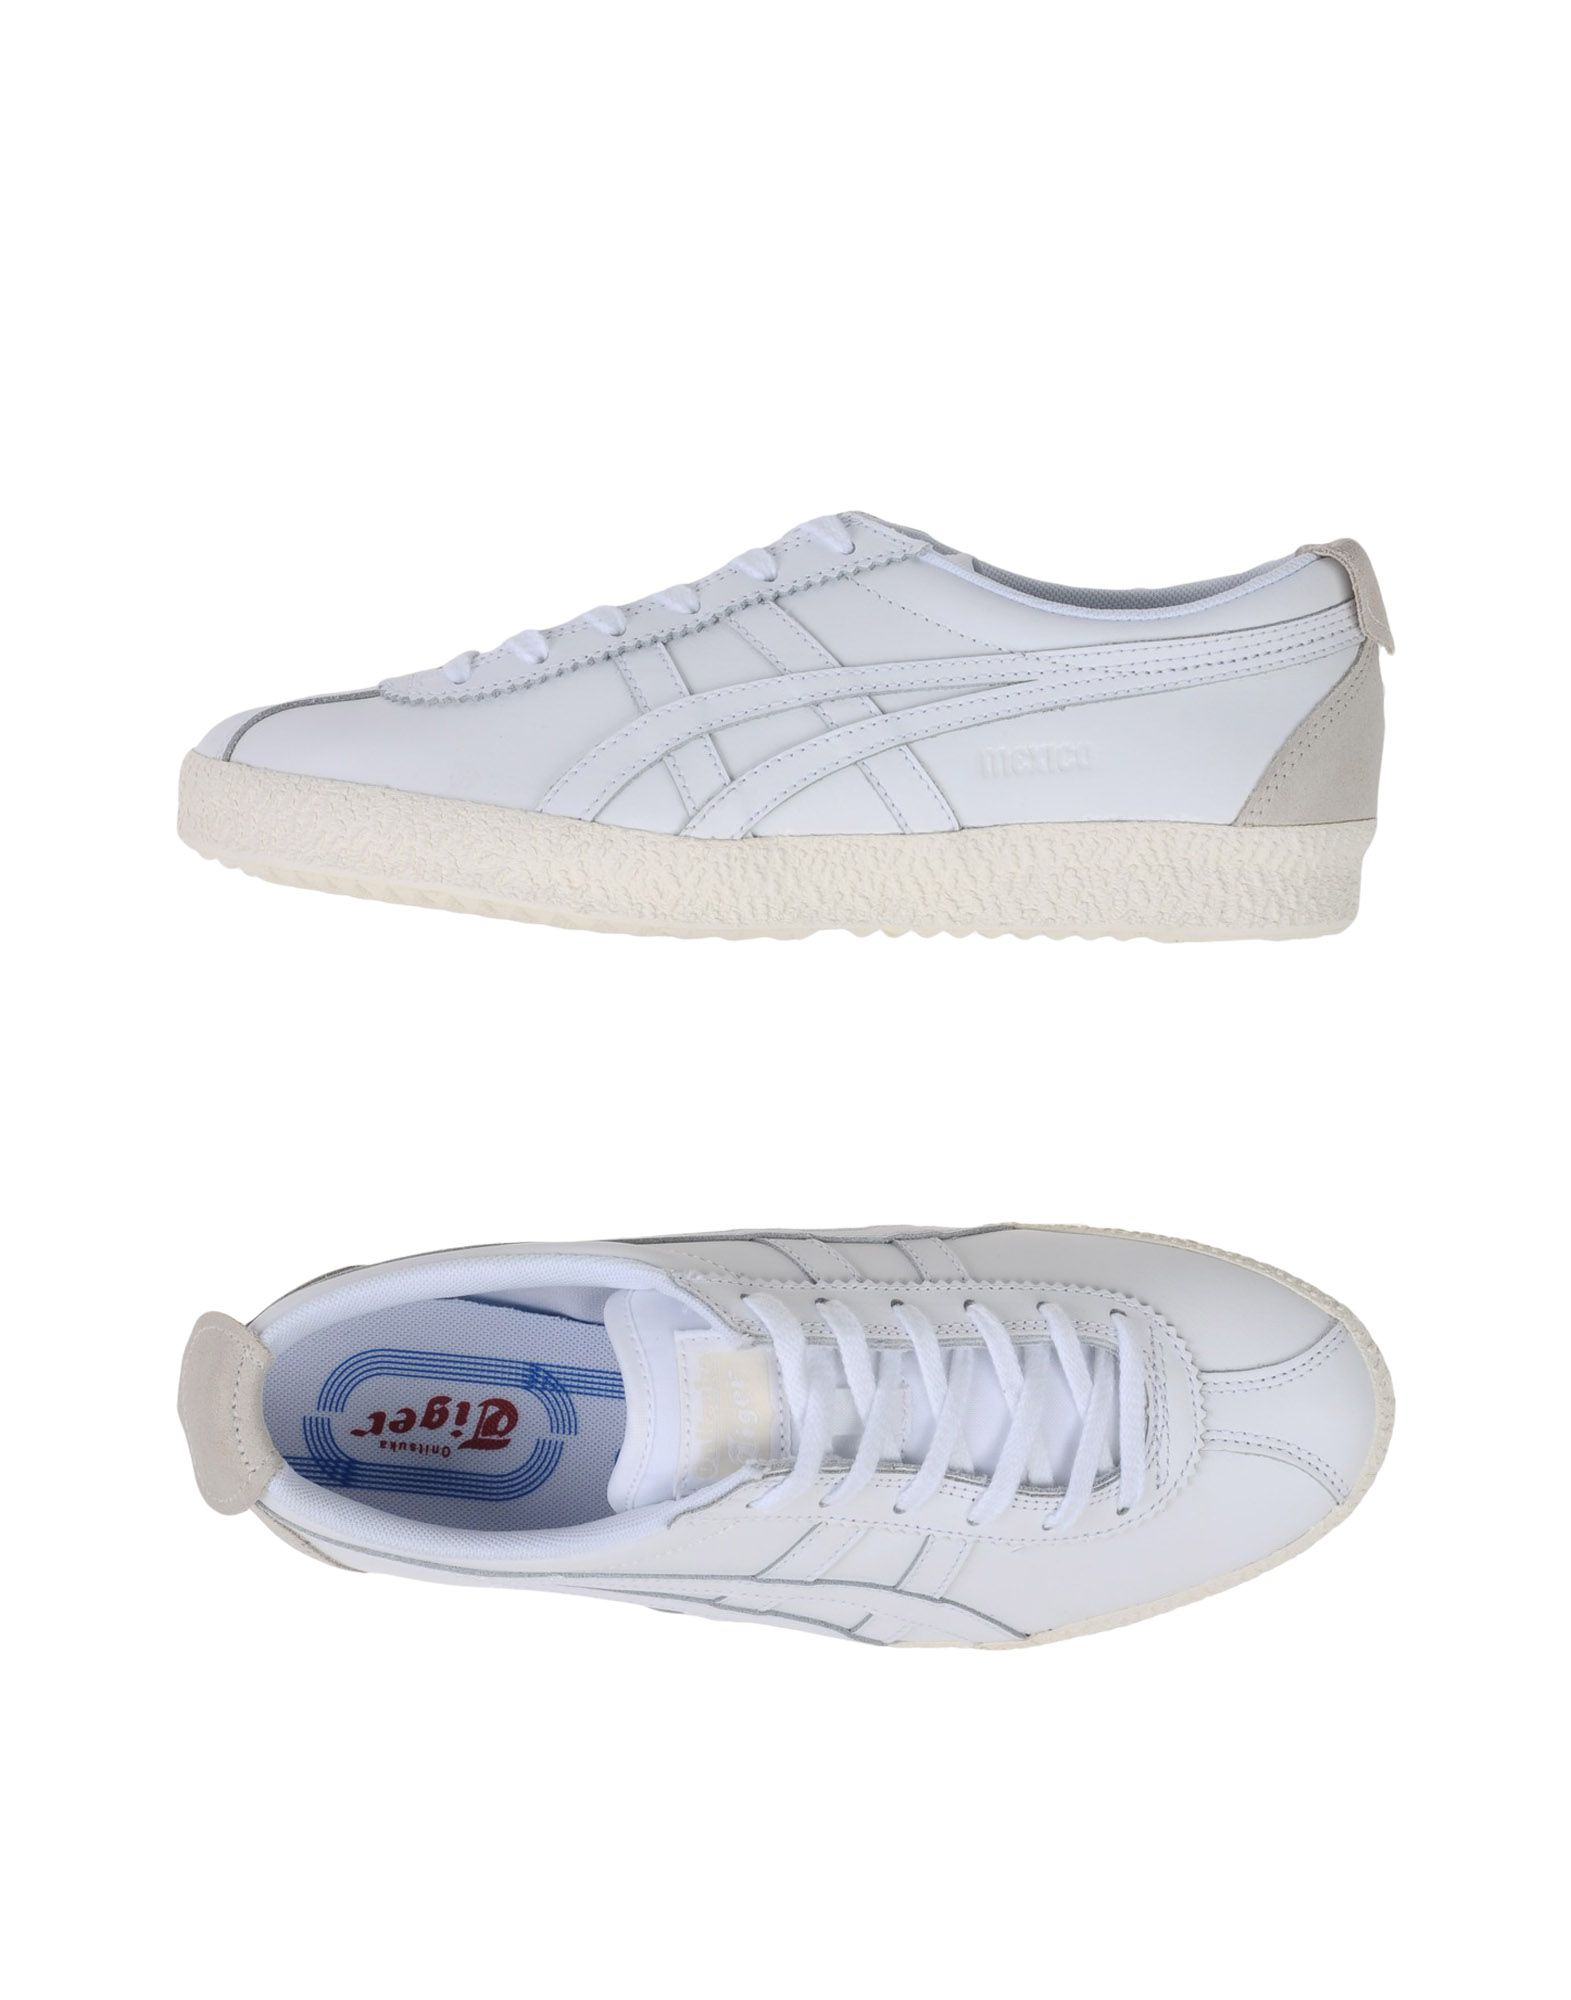 Sneakers Onitsuka Tiger Mexico Delegation - Donna - 11107302RR 11107302RR - 365488